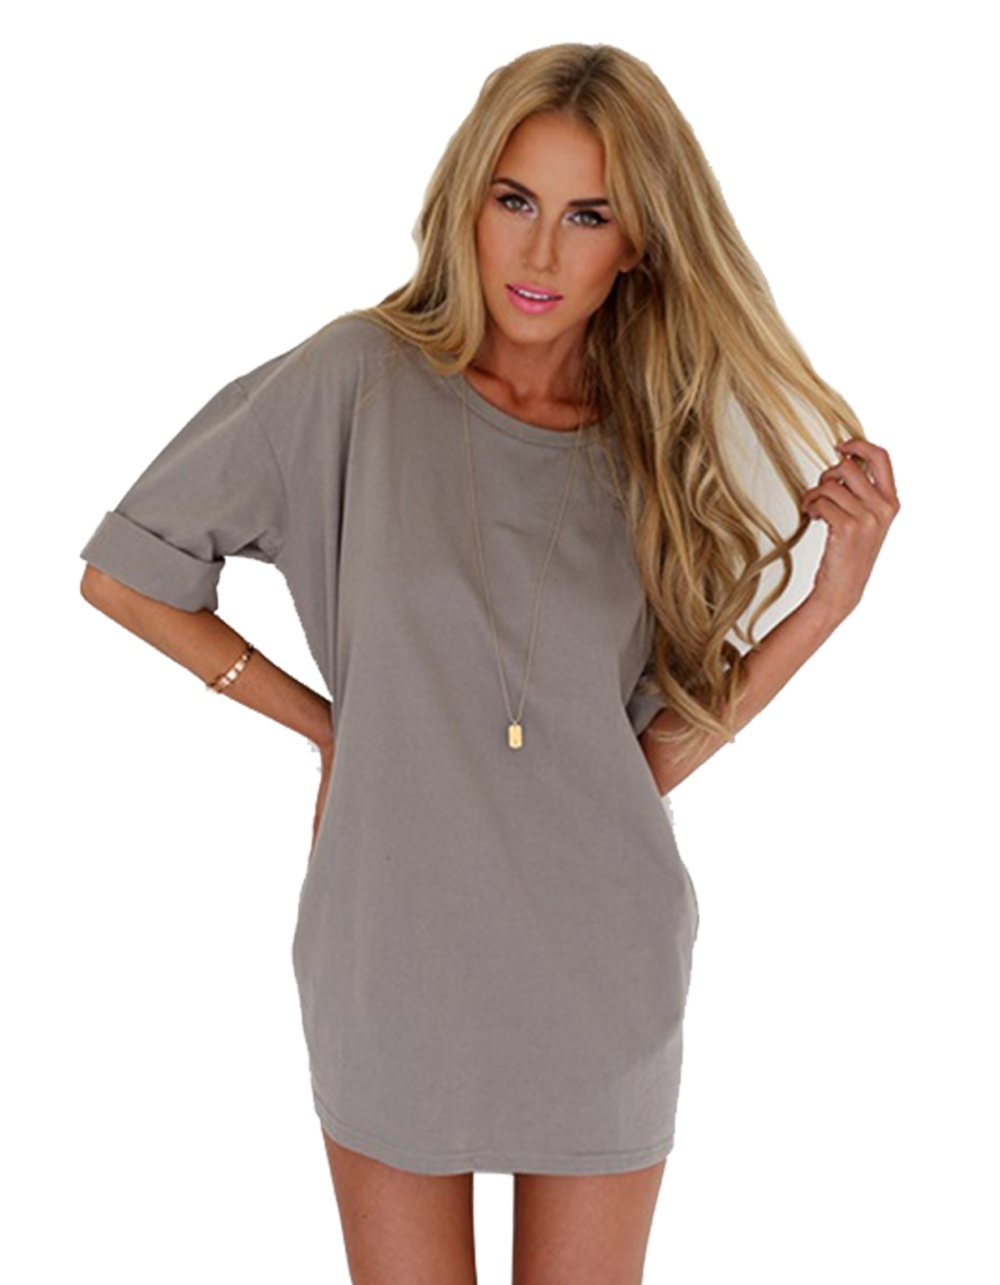 sunweb short sleeve women loose shift dress